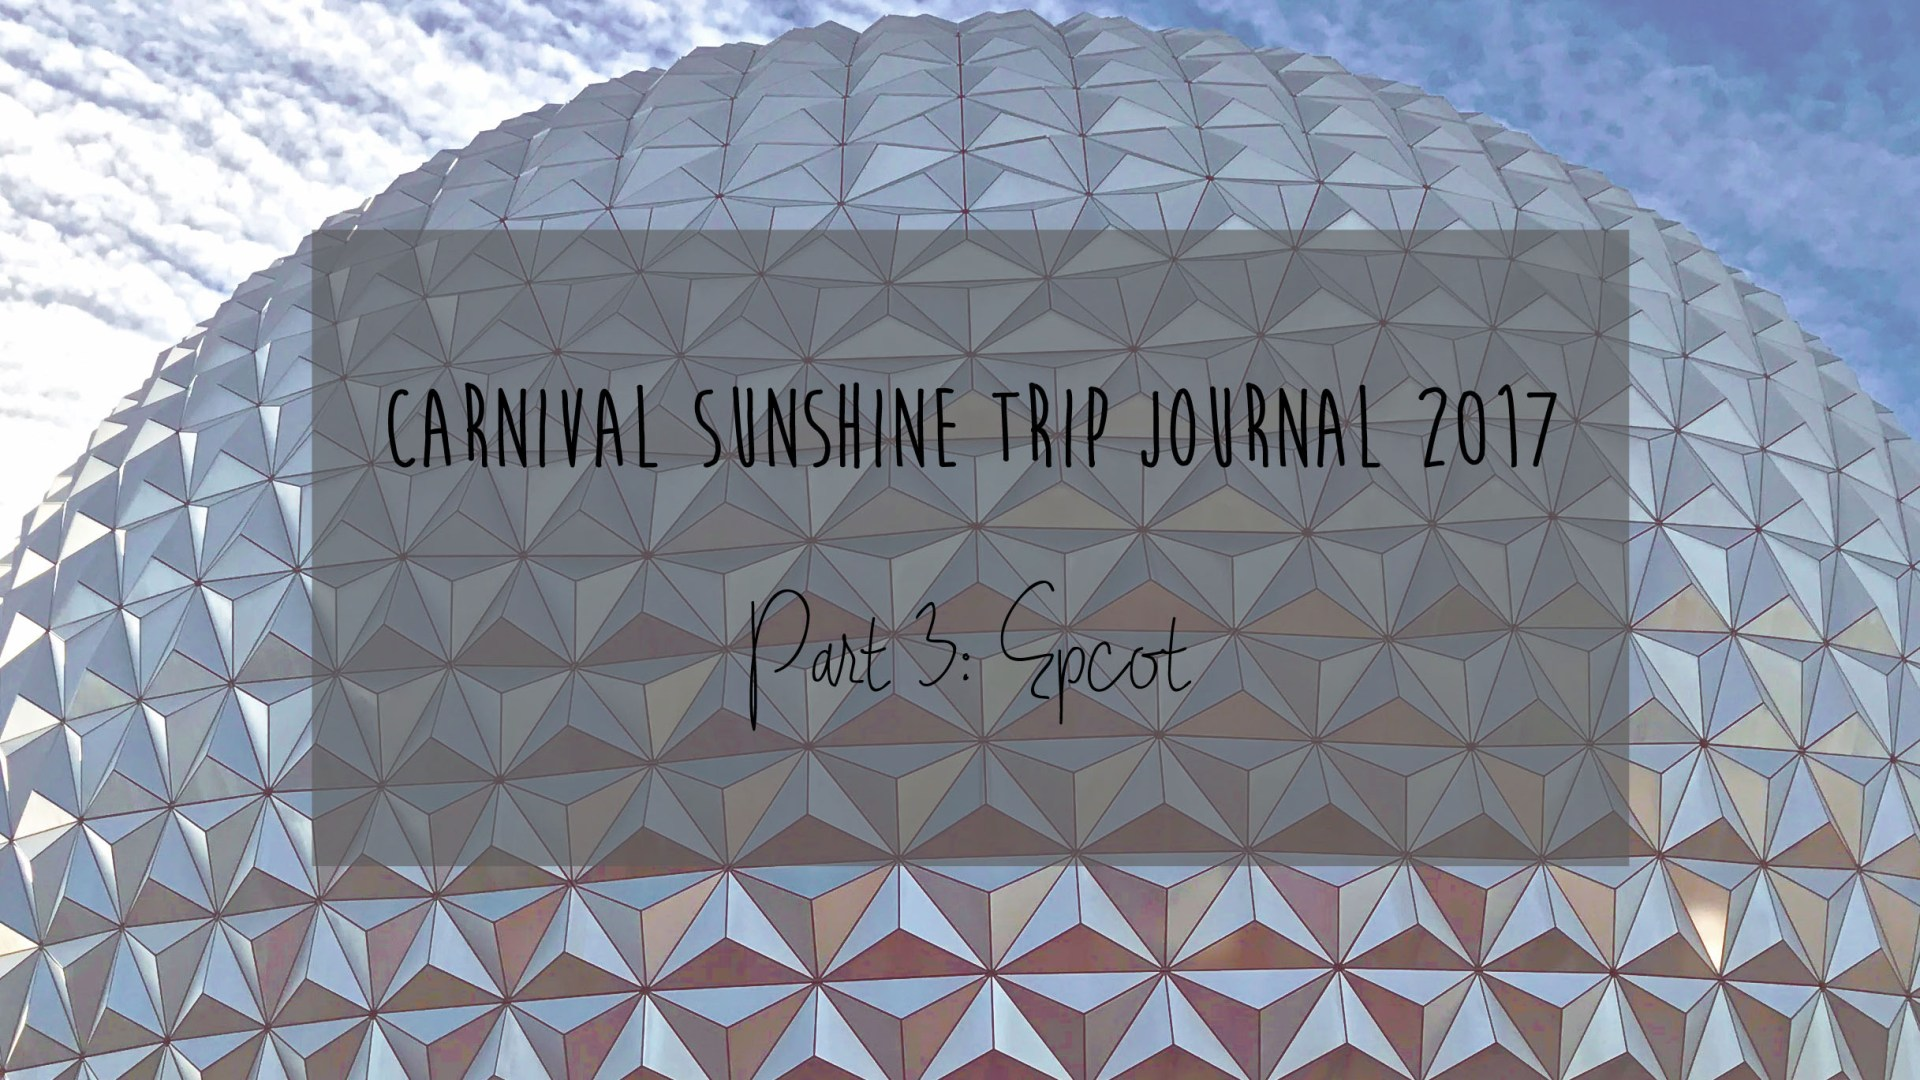 Carnival Sunshine Trip Journal: Part 3 – Epcot